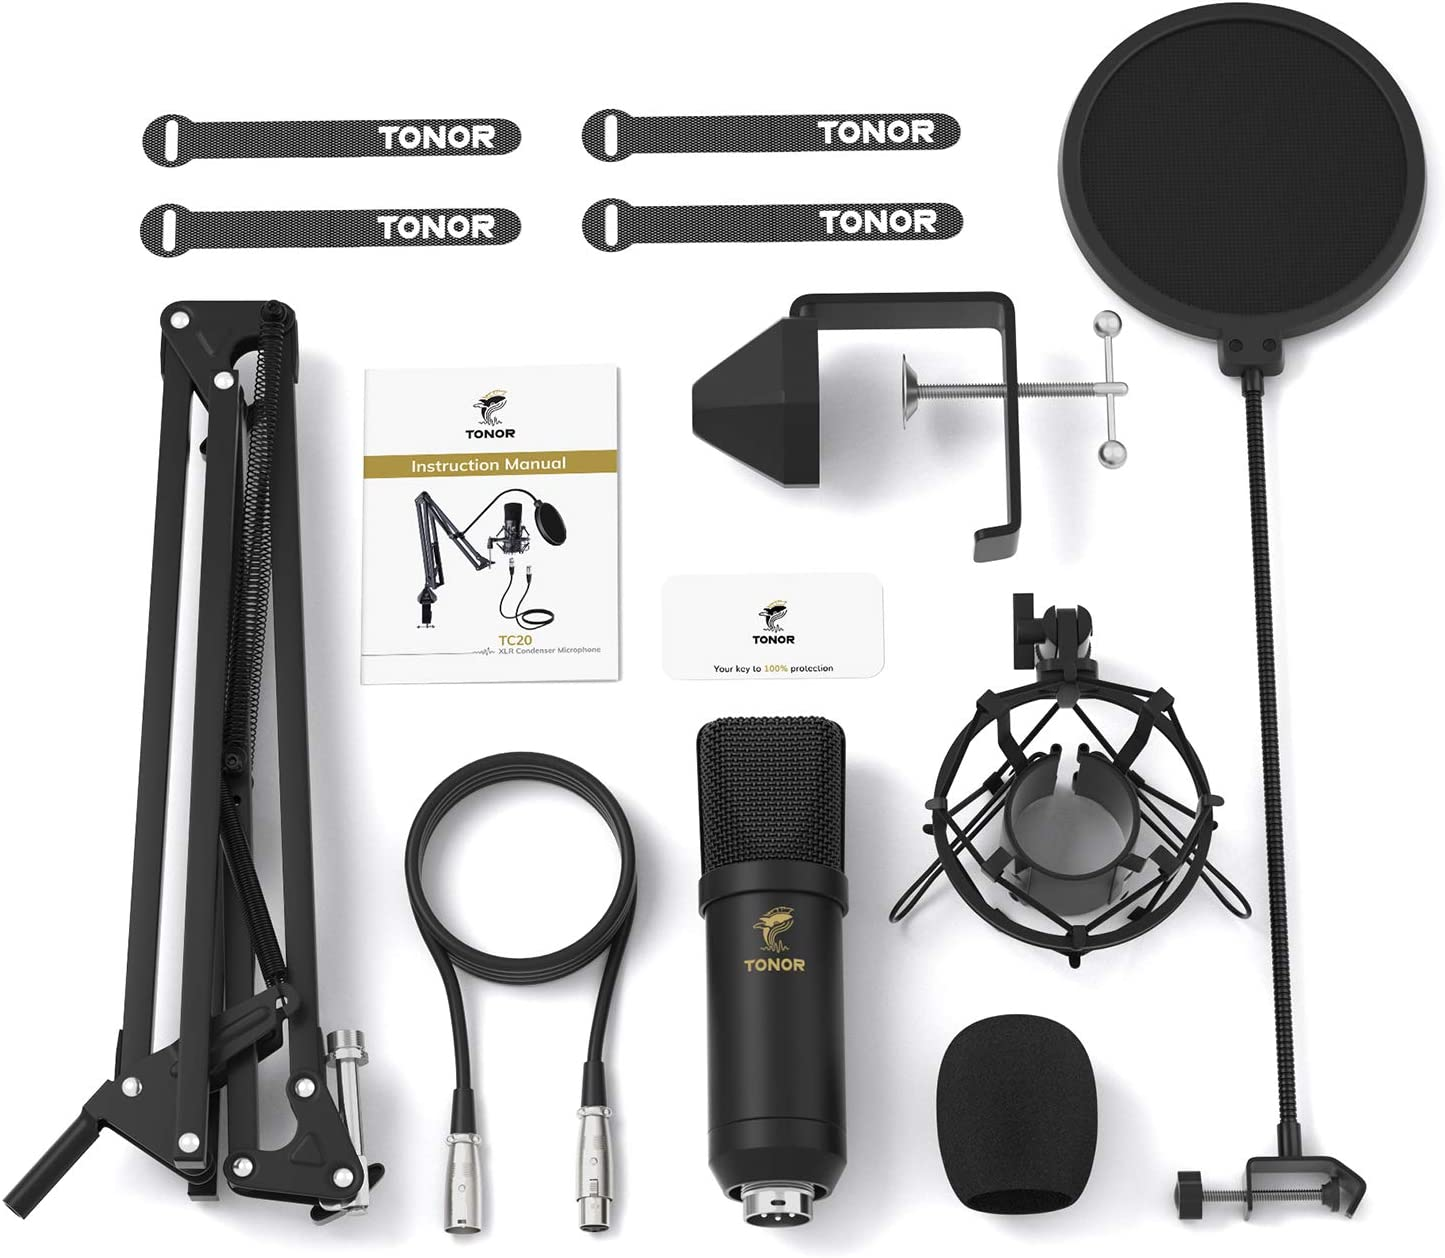 Voice Over Streaming Home Studio XLR Condenser Microphone TONOR Professional Cardioid Studio Mic Kit with T20 Boom Arm TC20 YouTube Podcasting Shock Mount Pop Filter for Recording